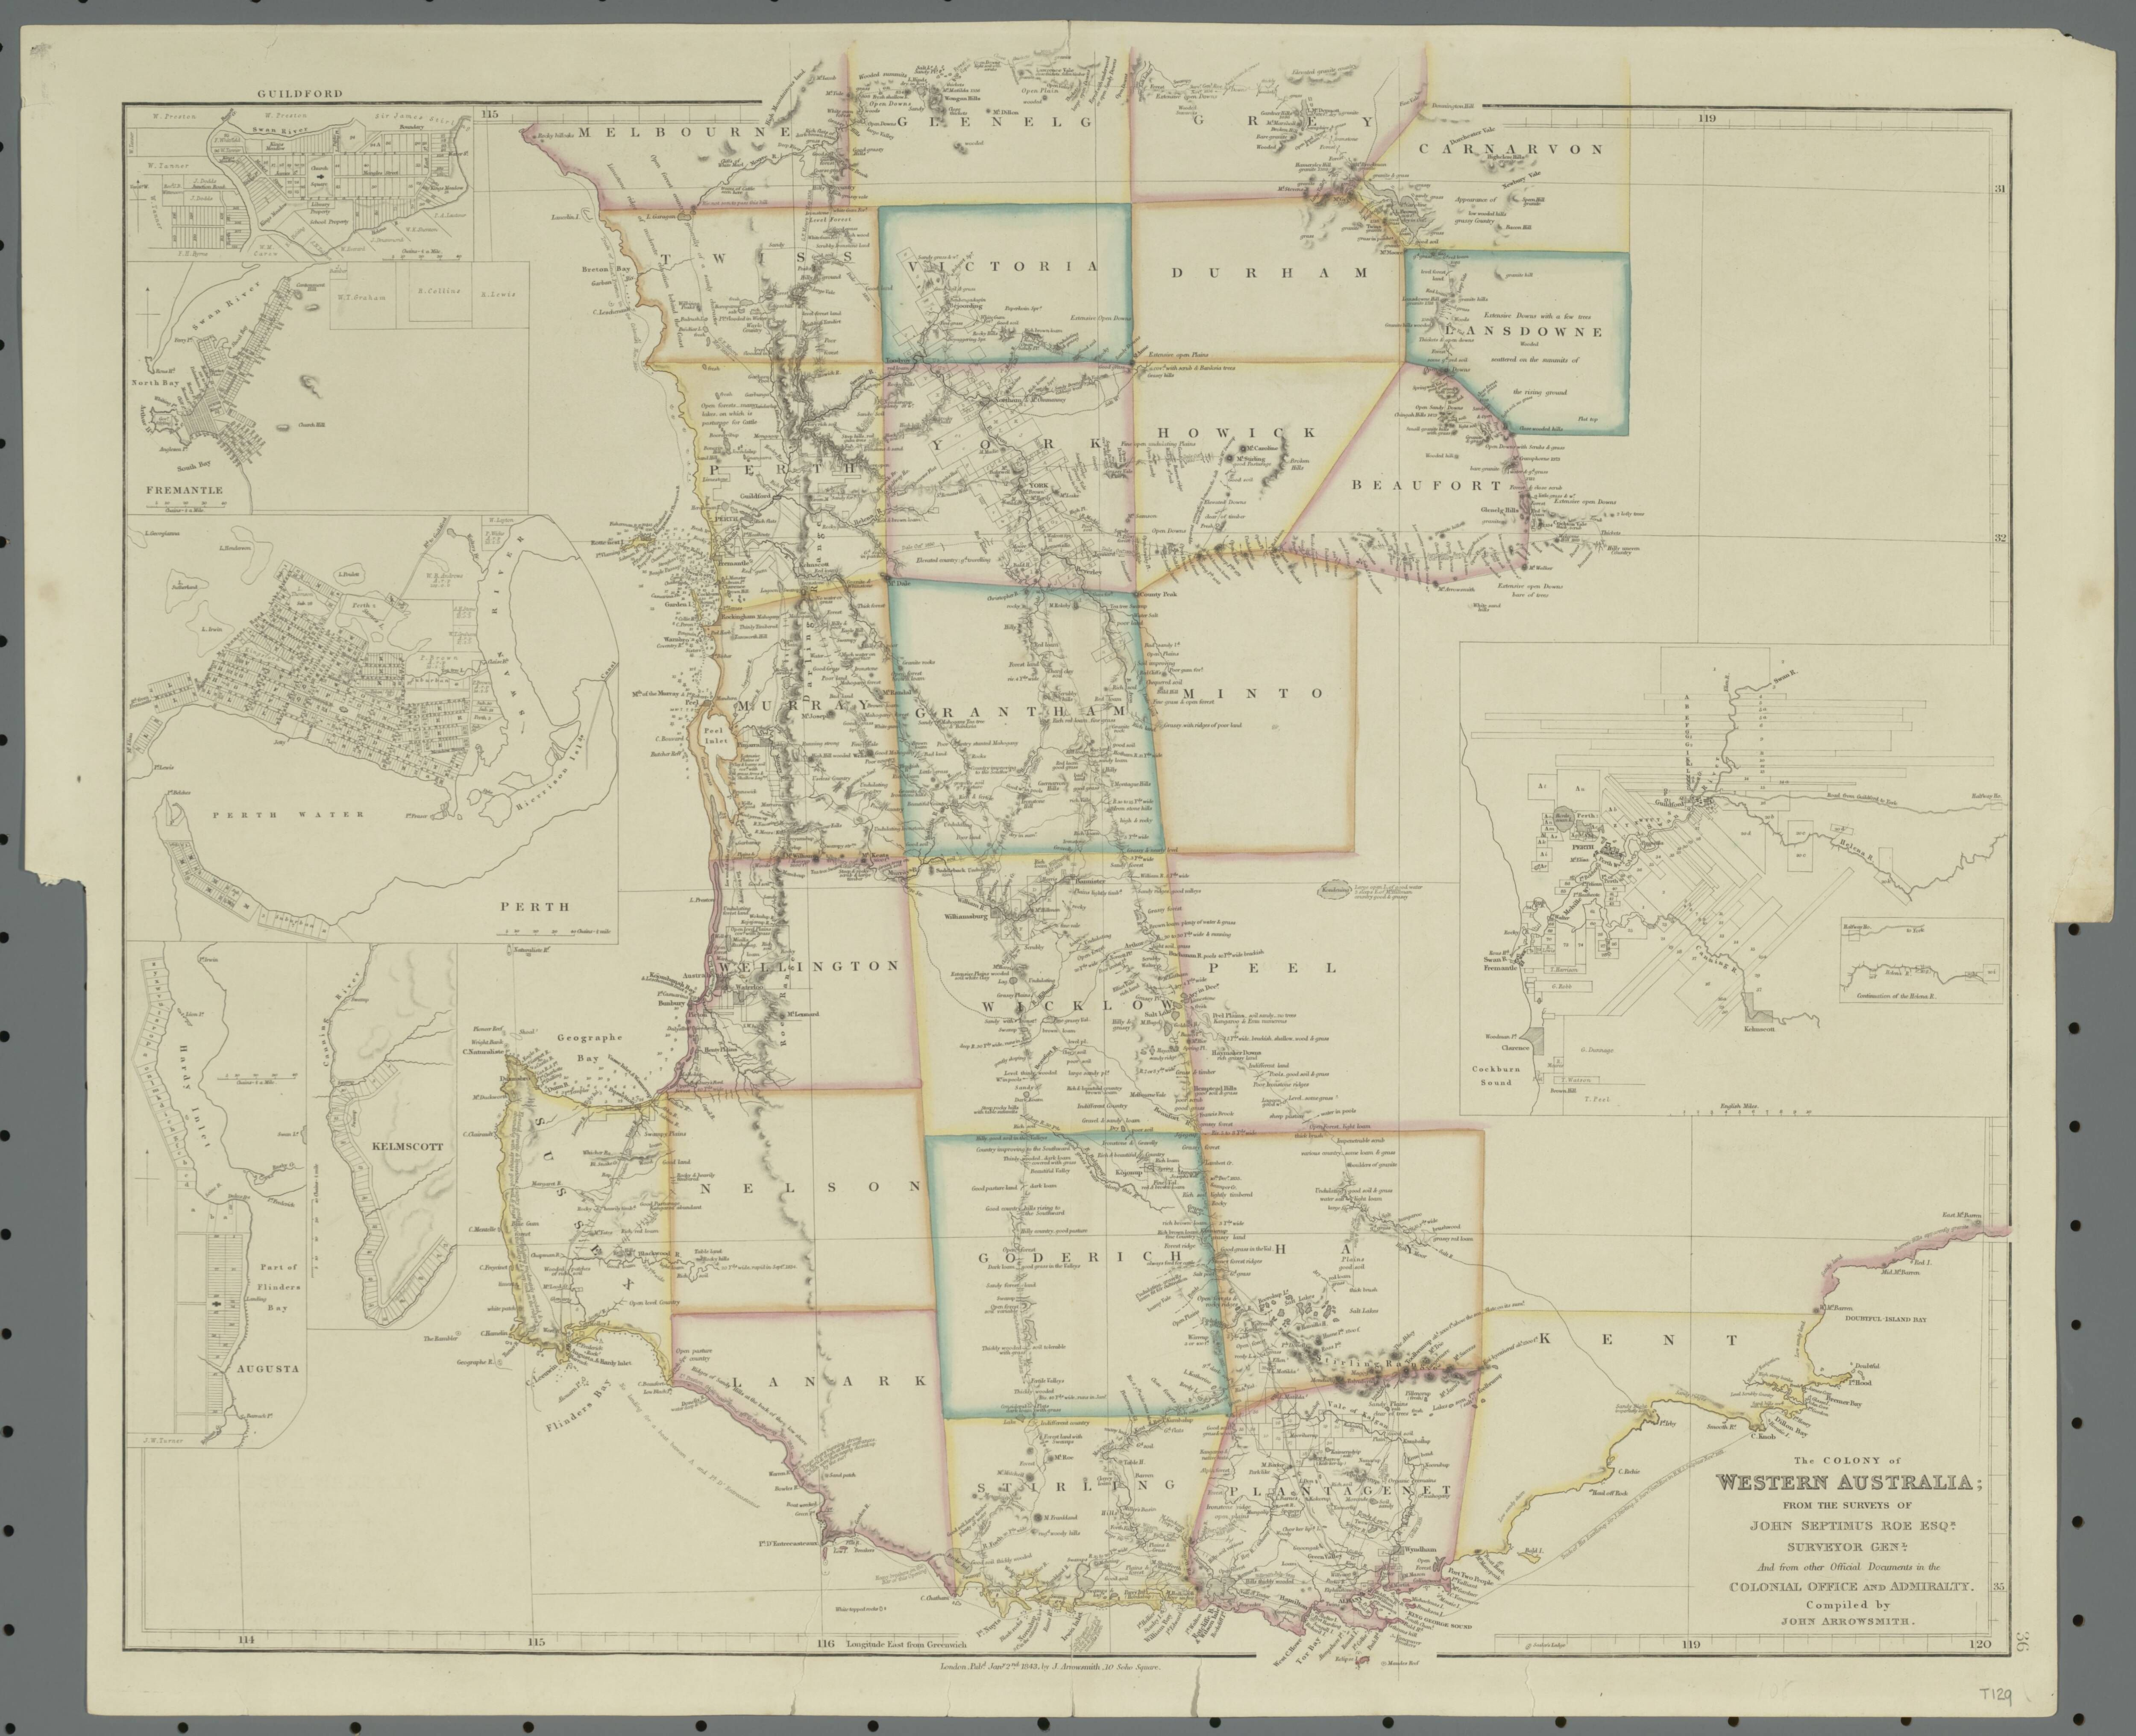 1843 Map of south western Western Australia showing counties and